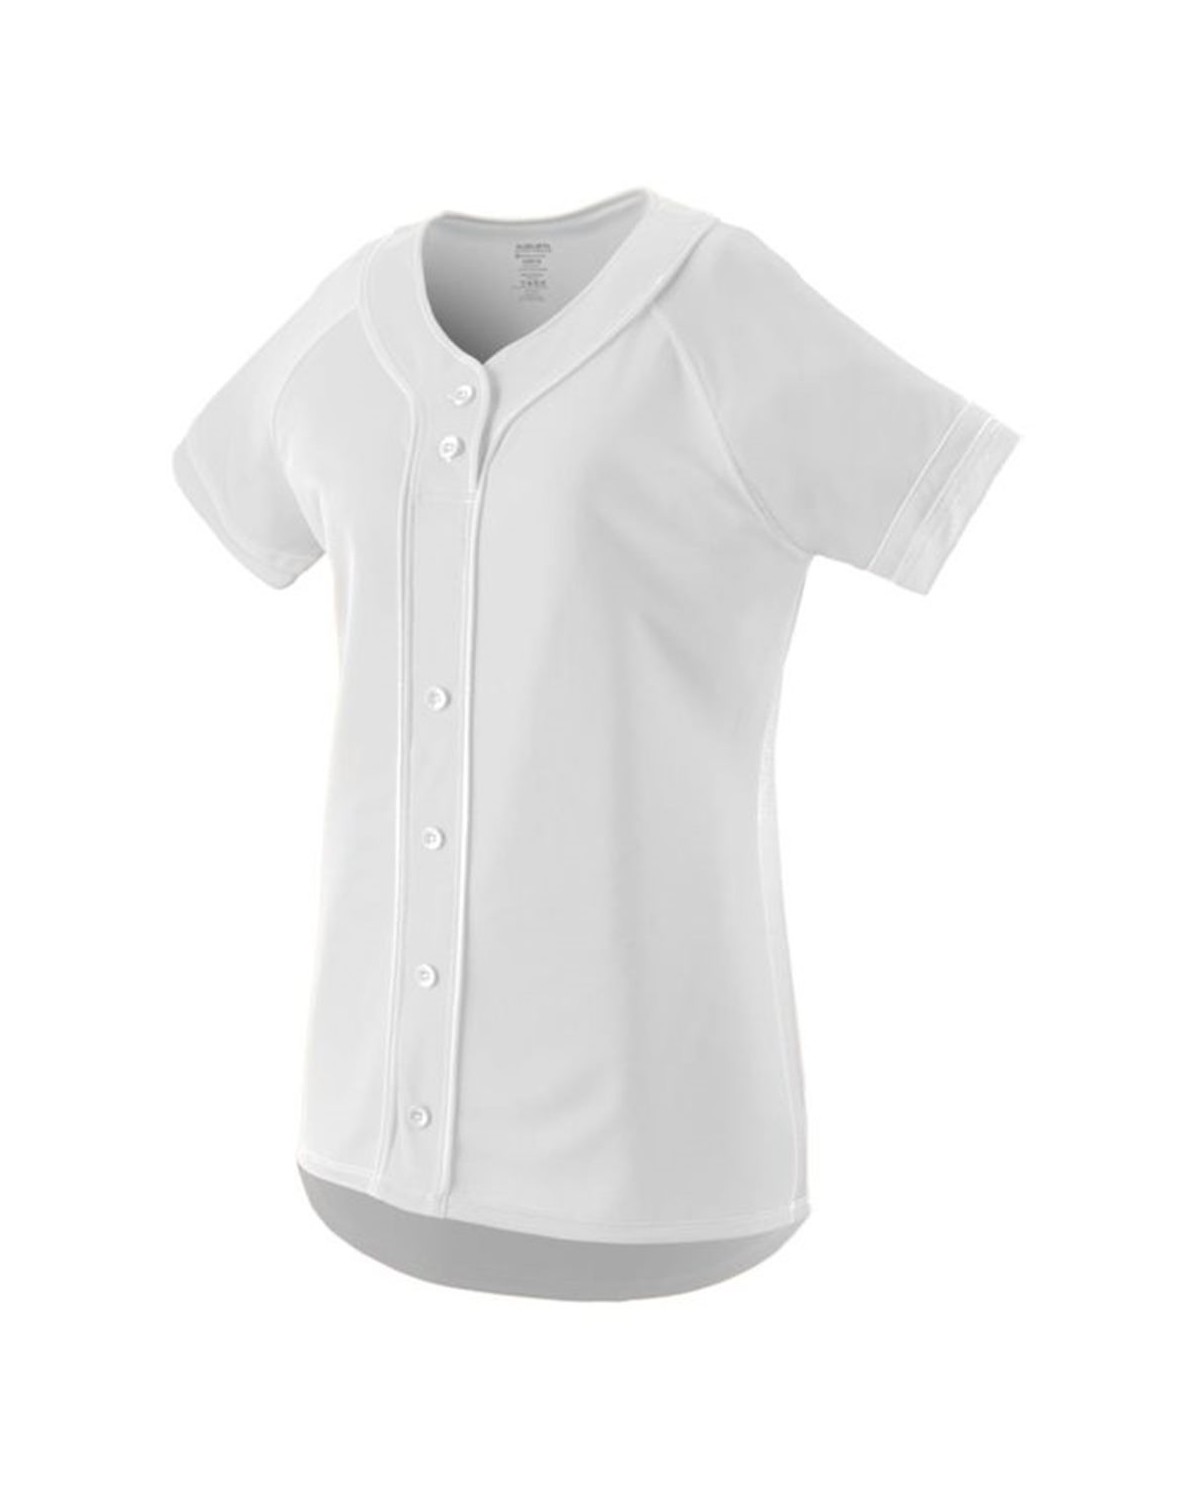 LA3902 LAT Apparel WHITE